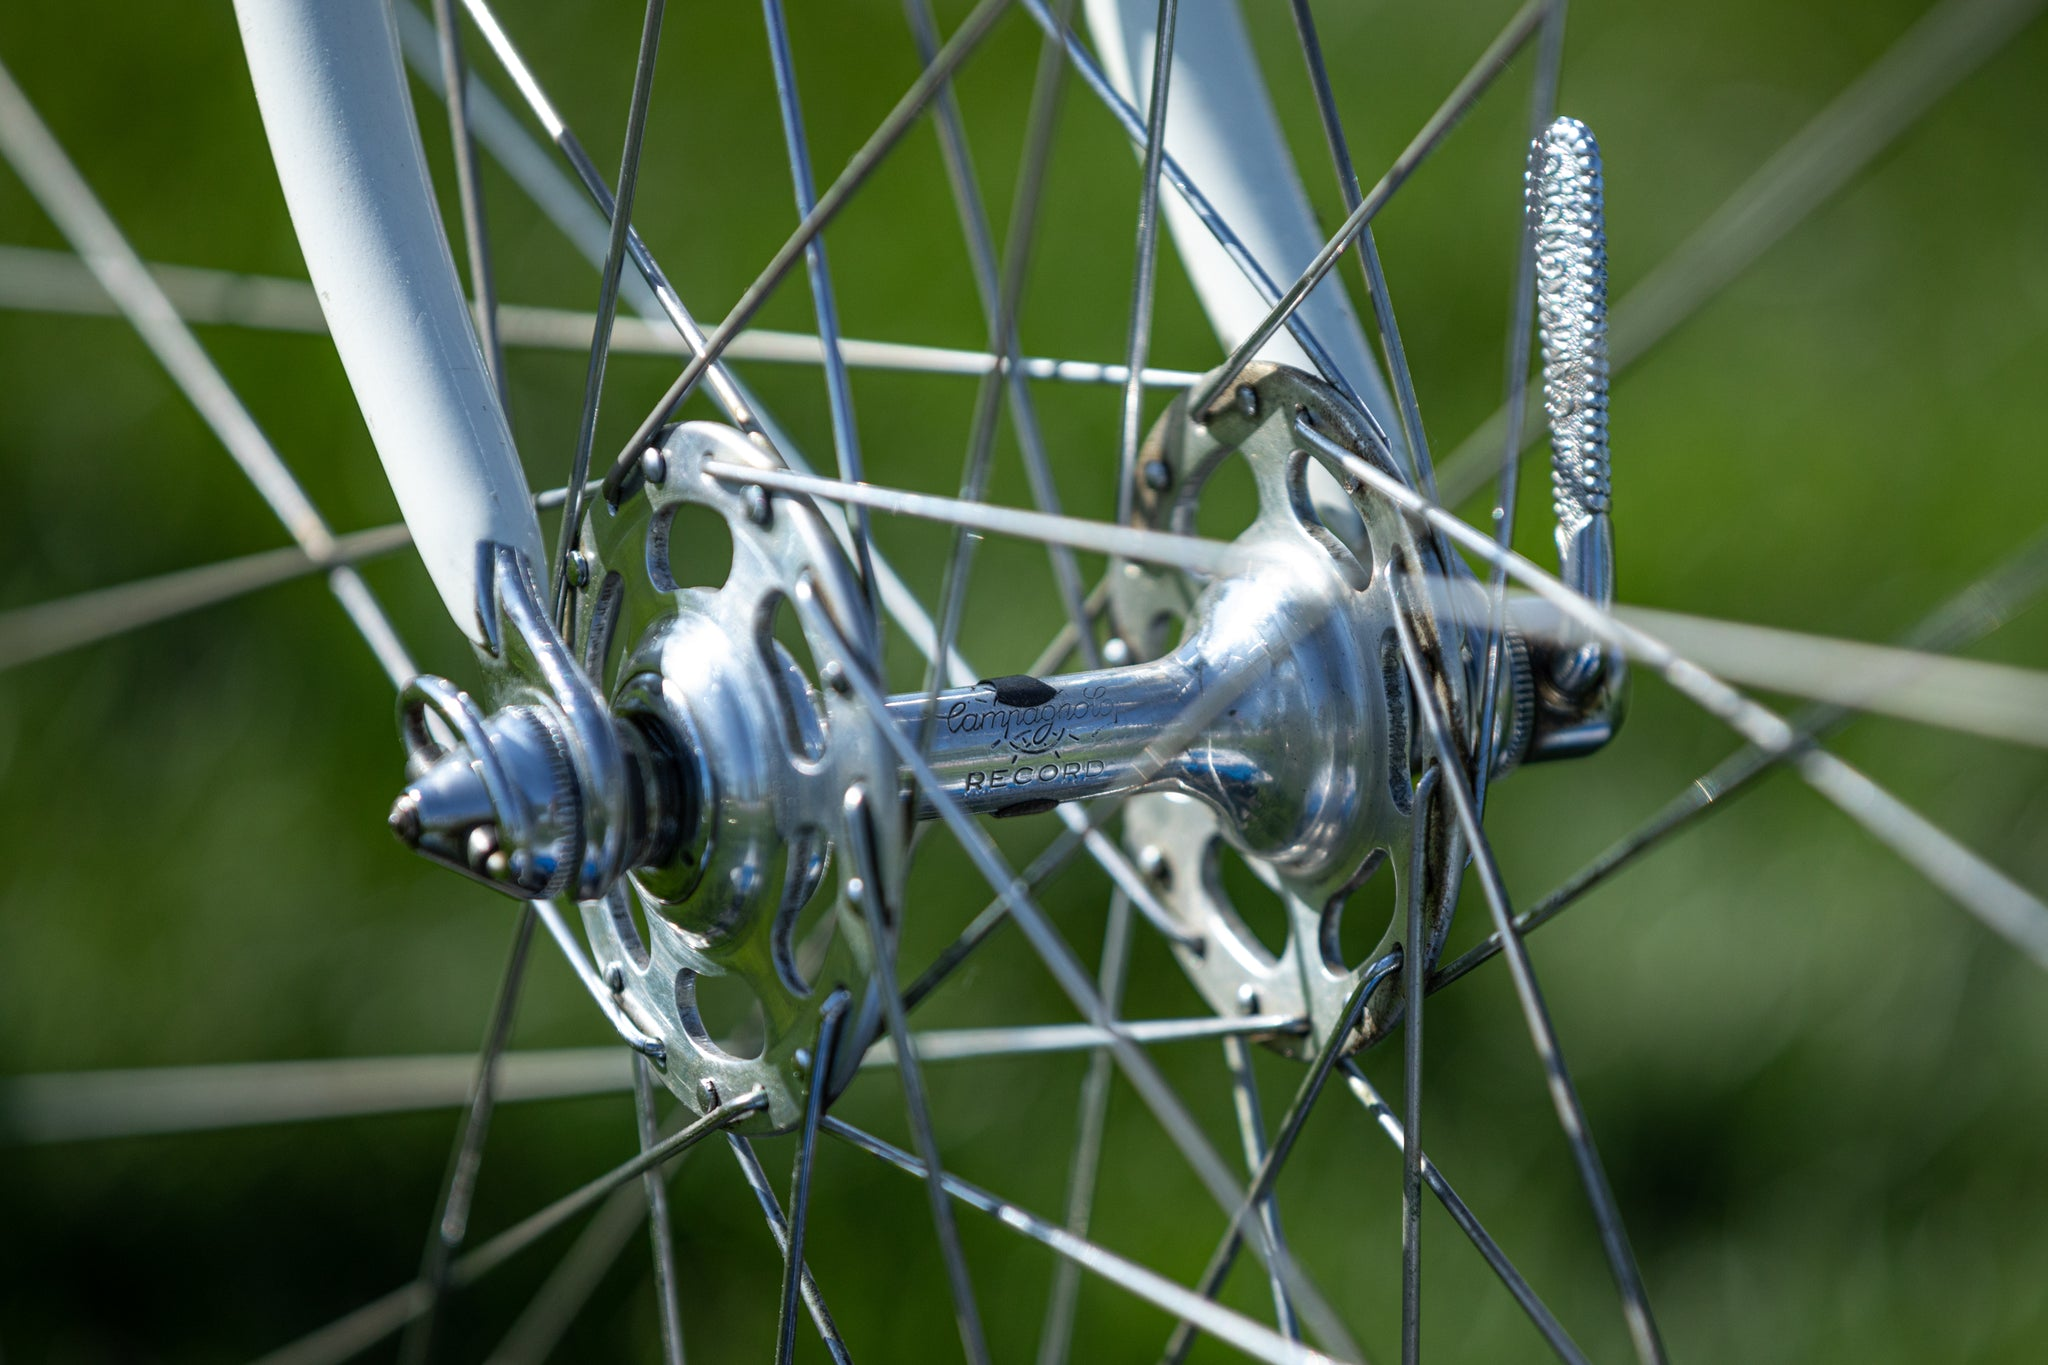 Campagnolo front hub